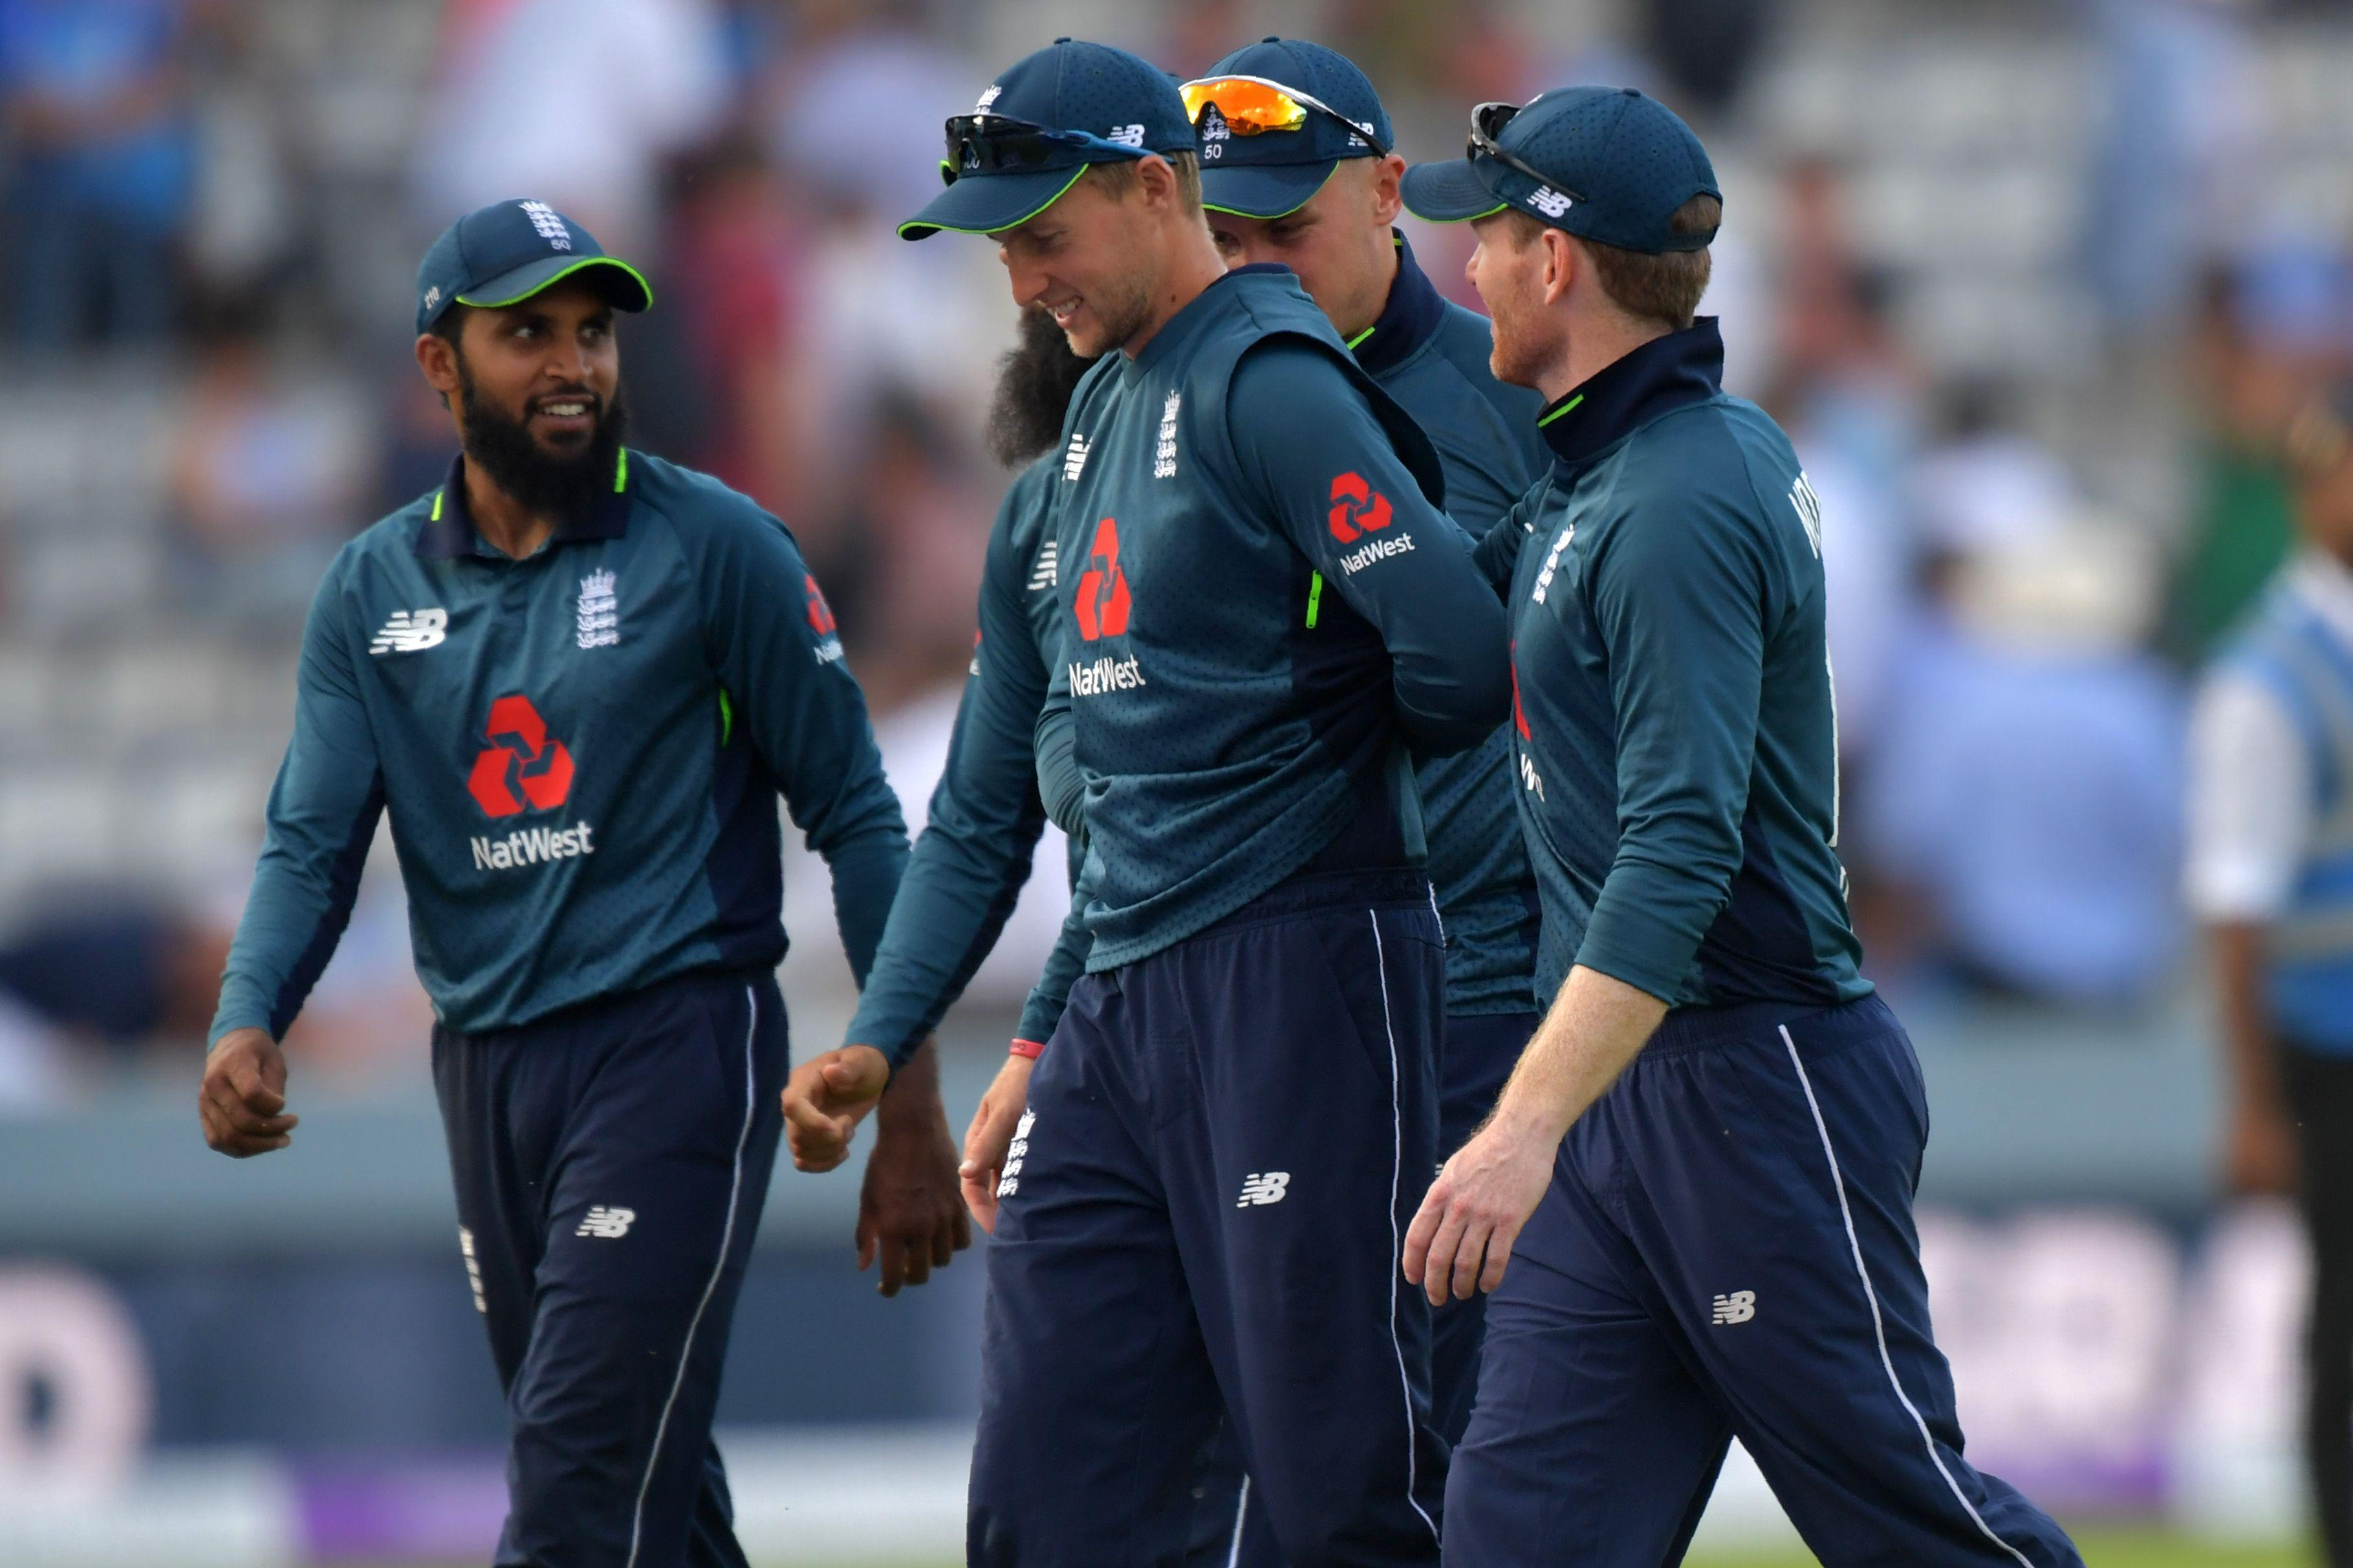 England celebrate levelling the match with one ODI to go